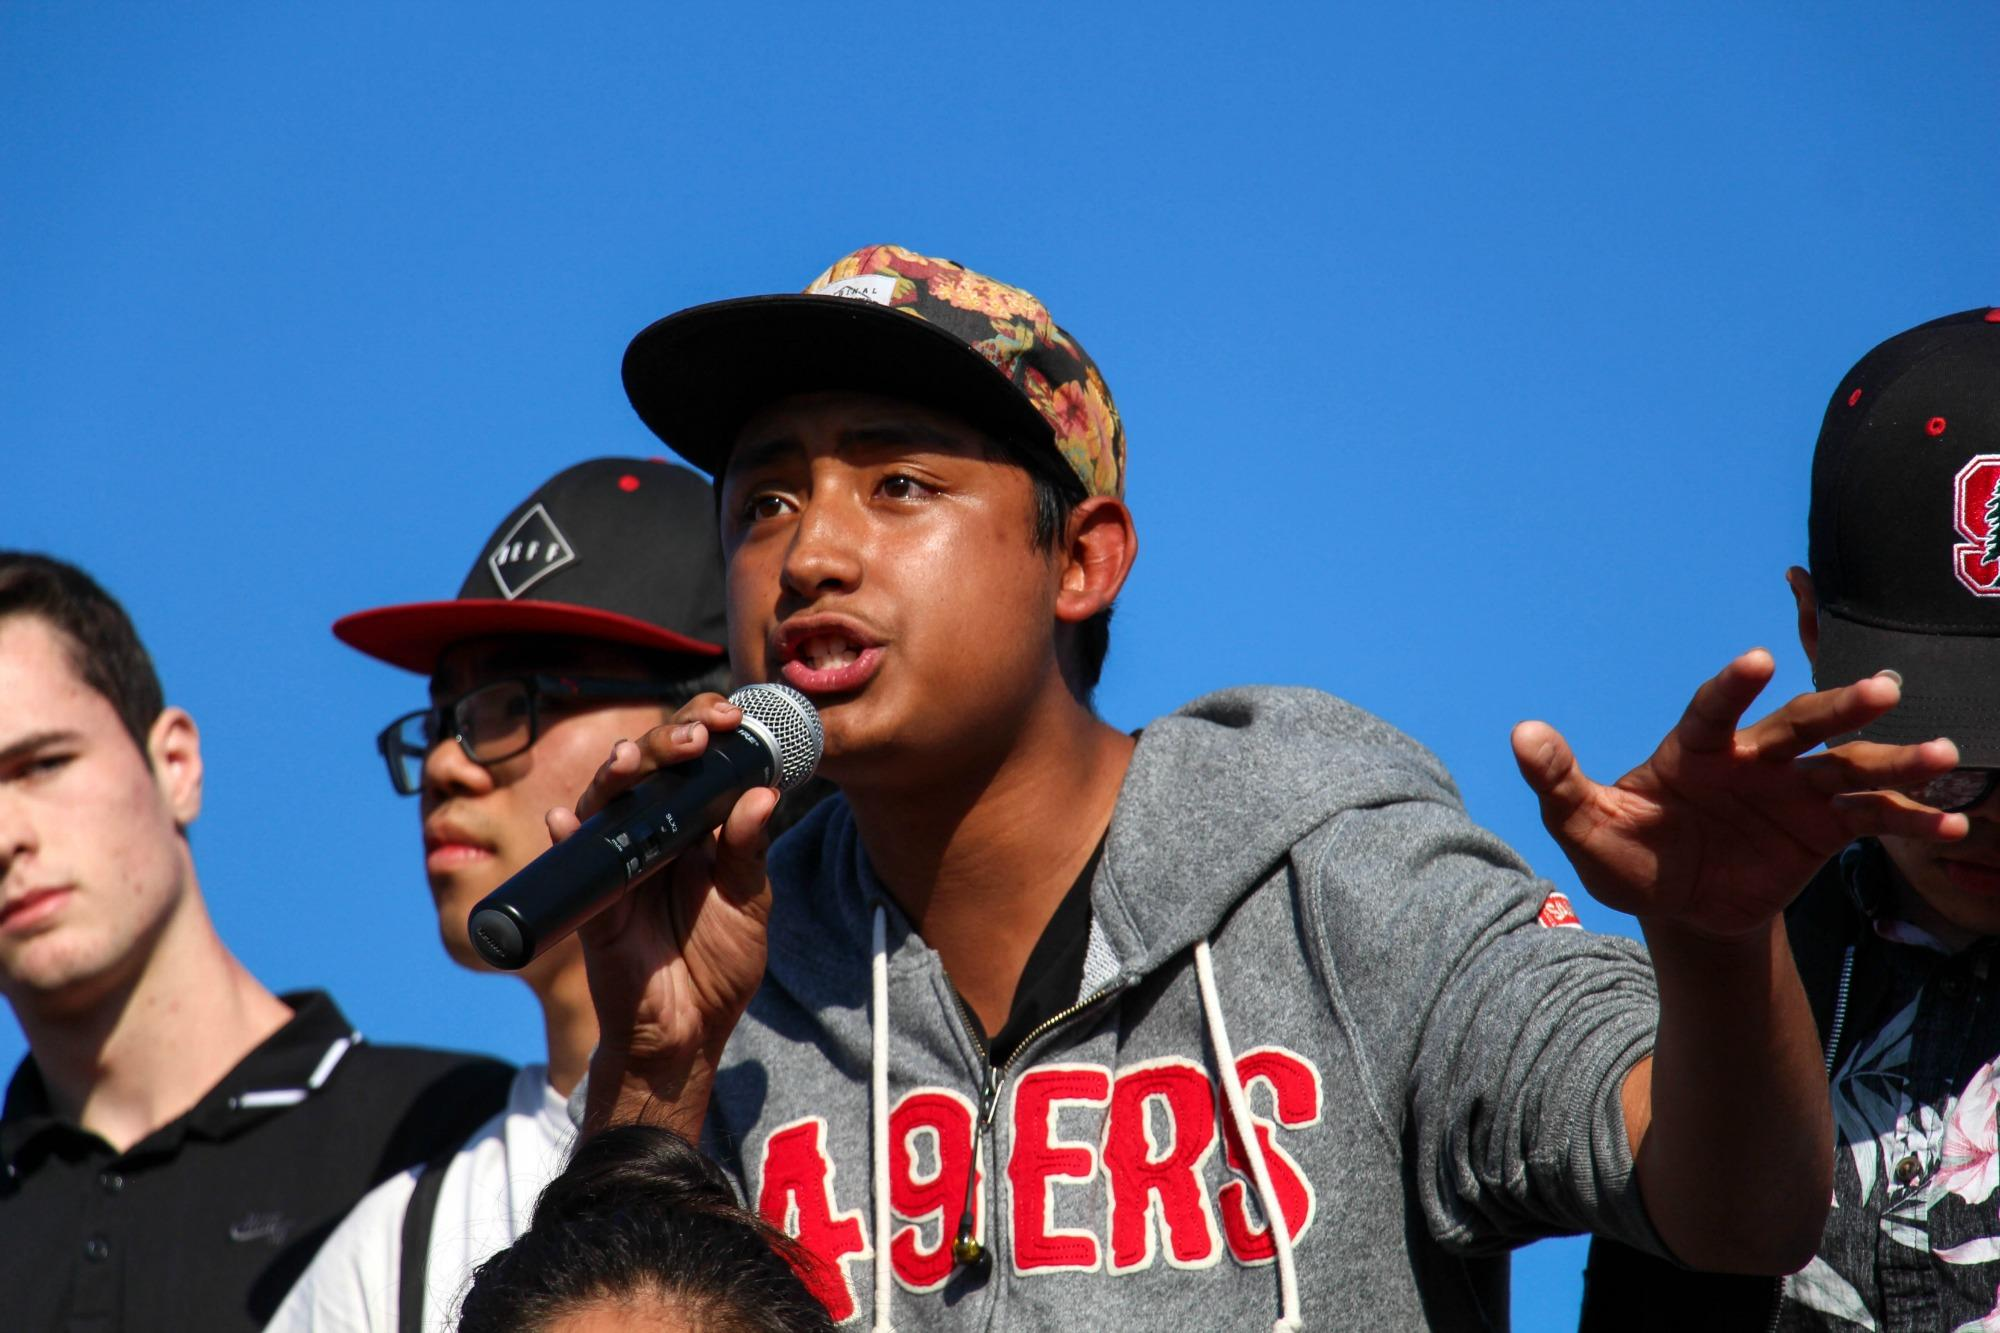 Junior Jesus Membrillo speaks at the Los Altos walkout that occurred on Monday November 14. Jesus promotes unity on campus and plans to organize his future around politics. Photo by Michael Sieffert.